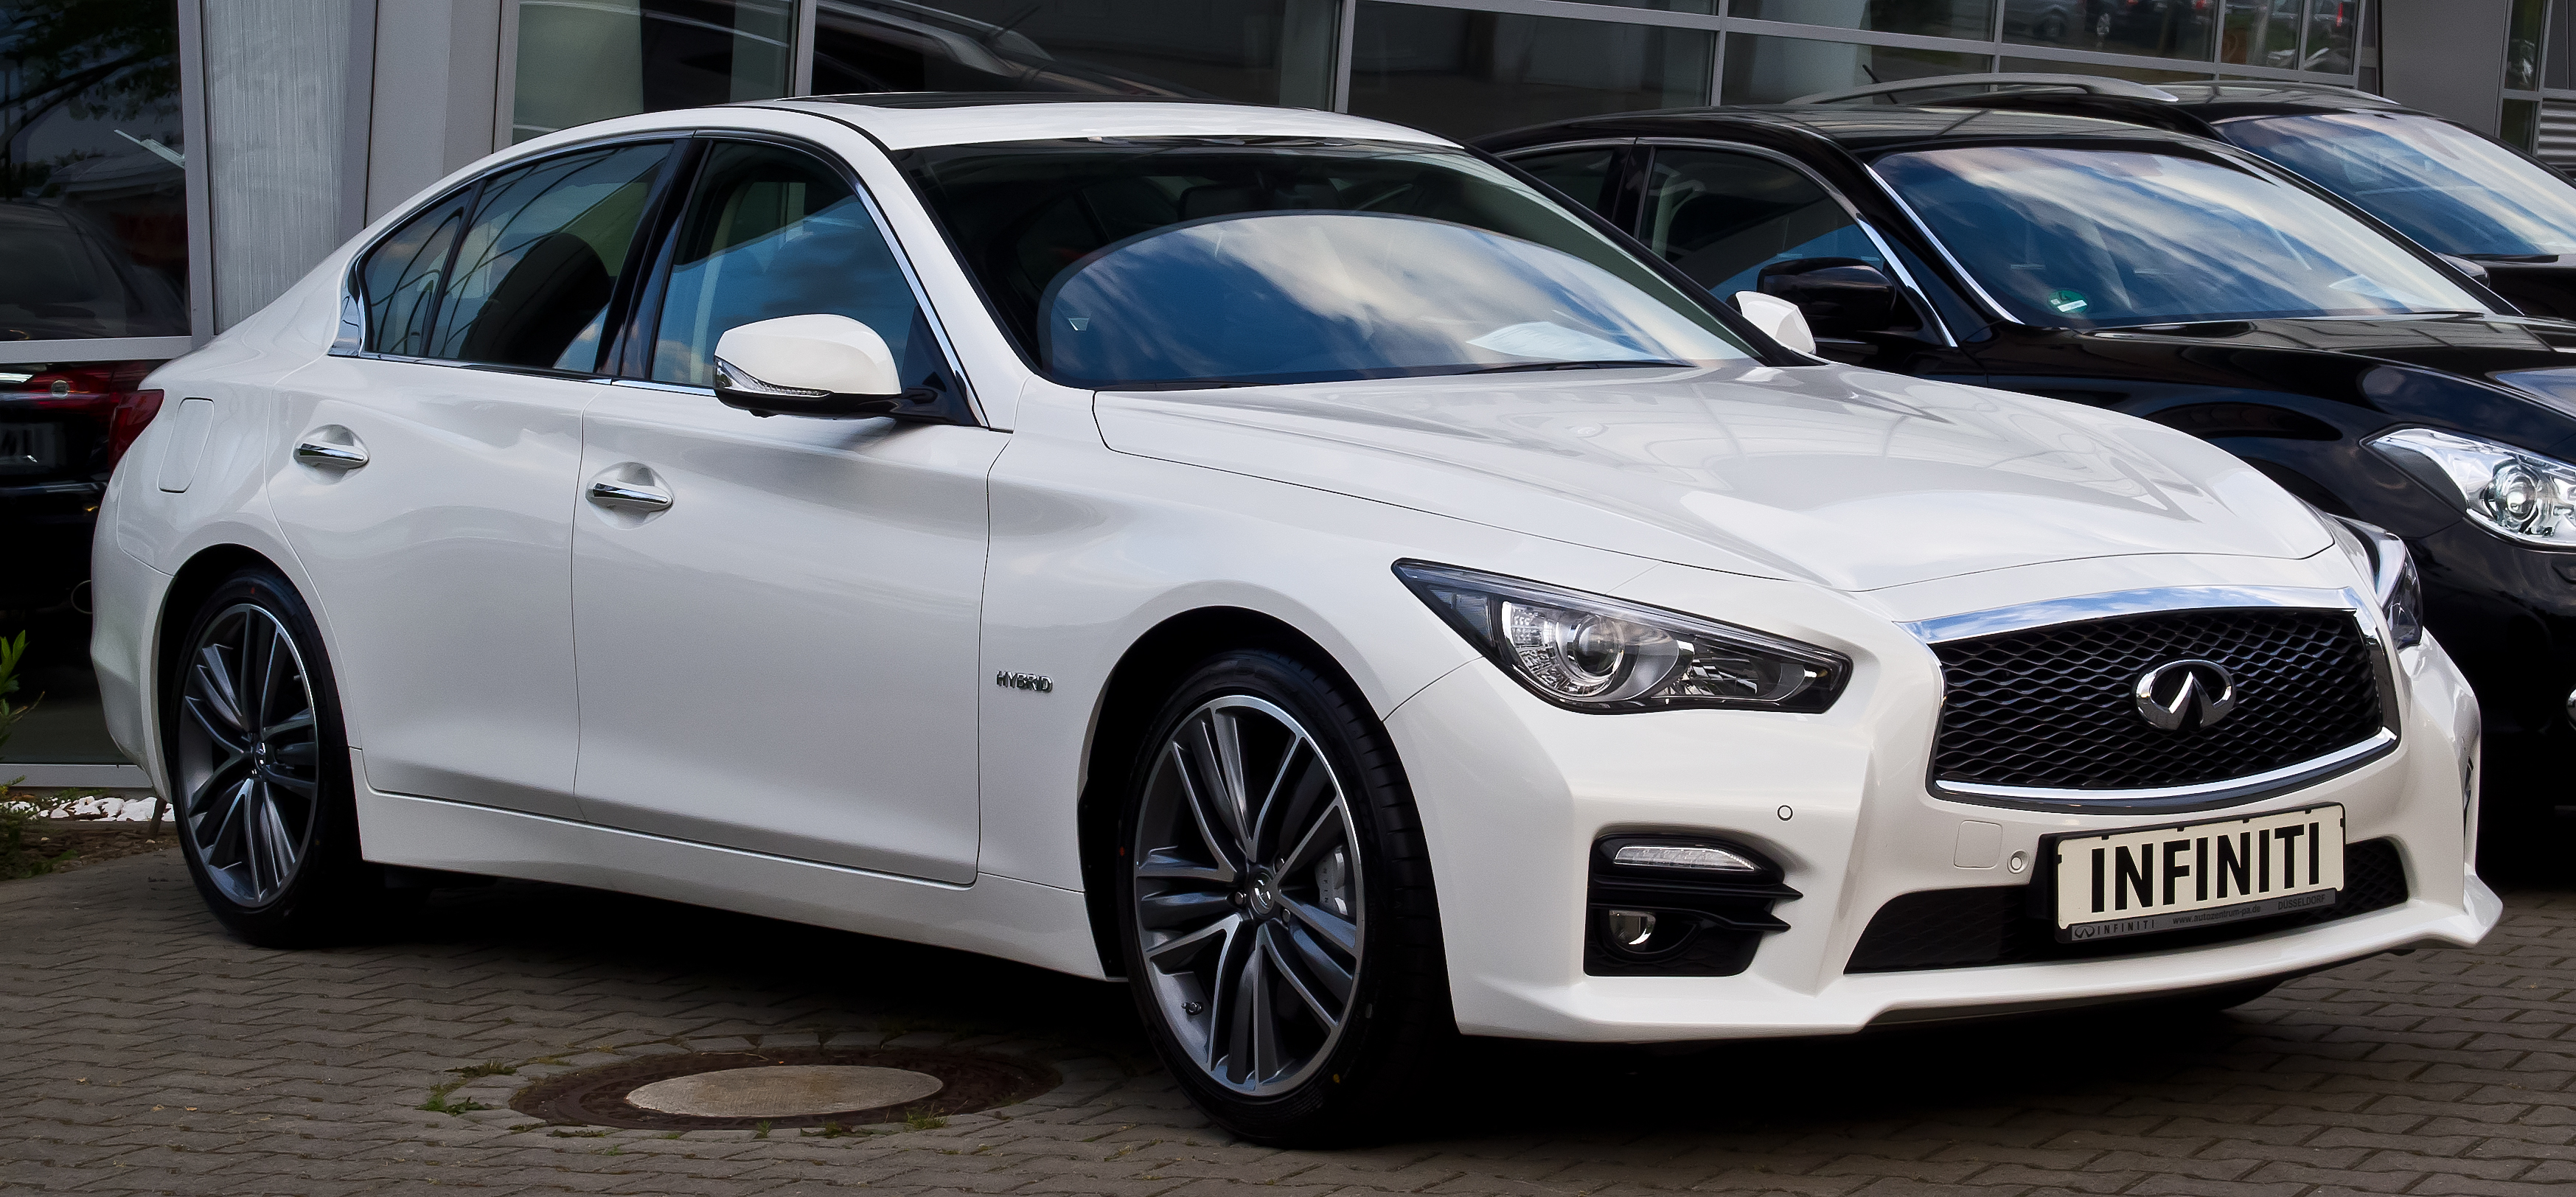 73 The Best 2020 Infiniti Q50 Coupe Eau Rouge Pricing